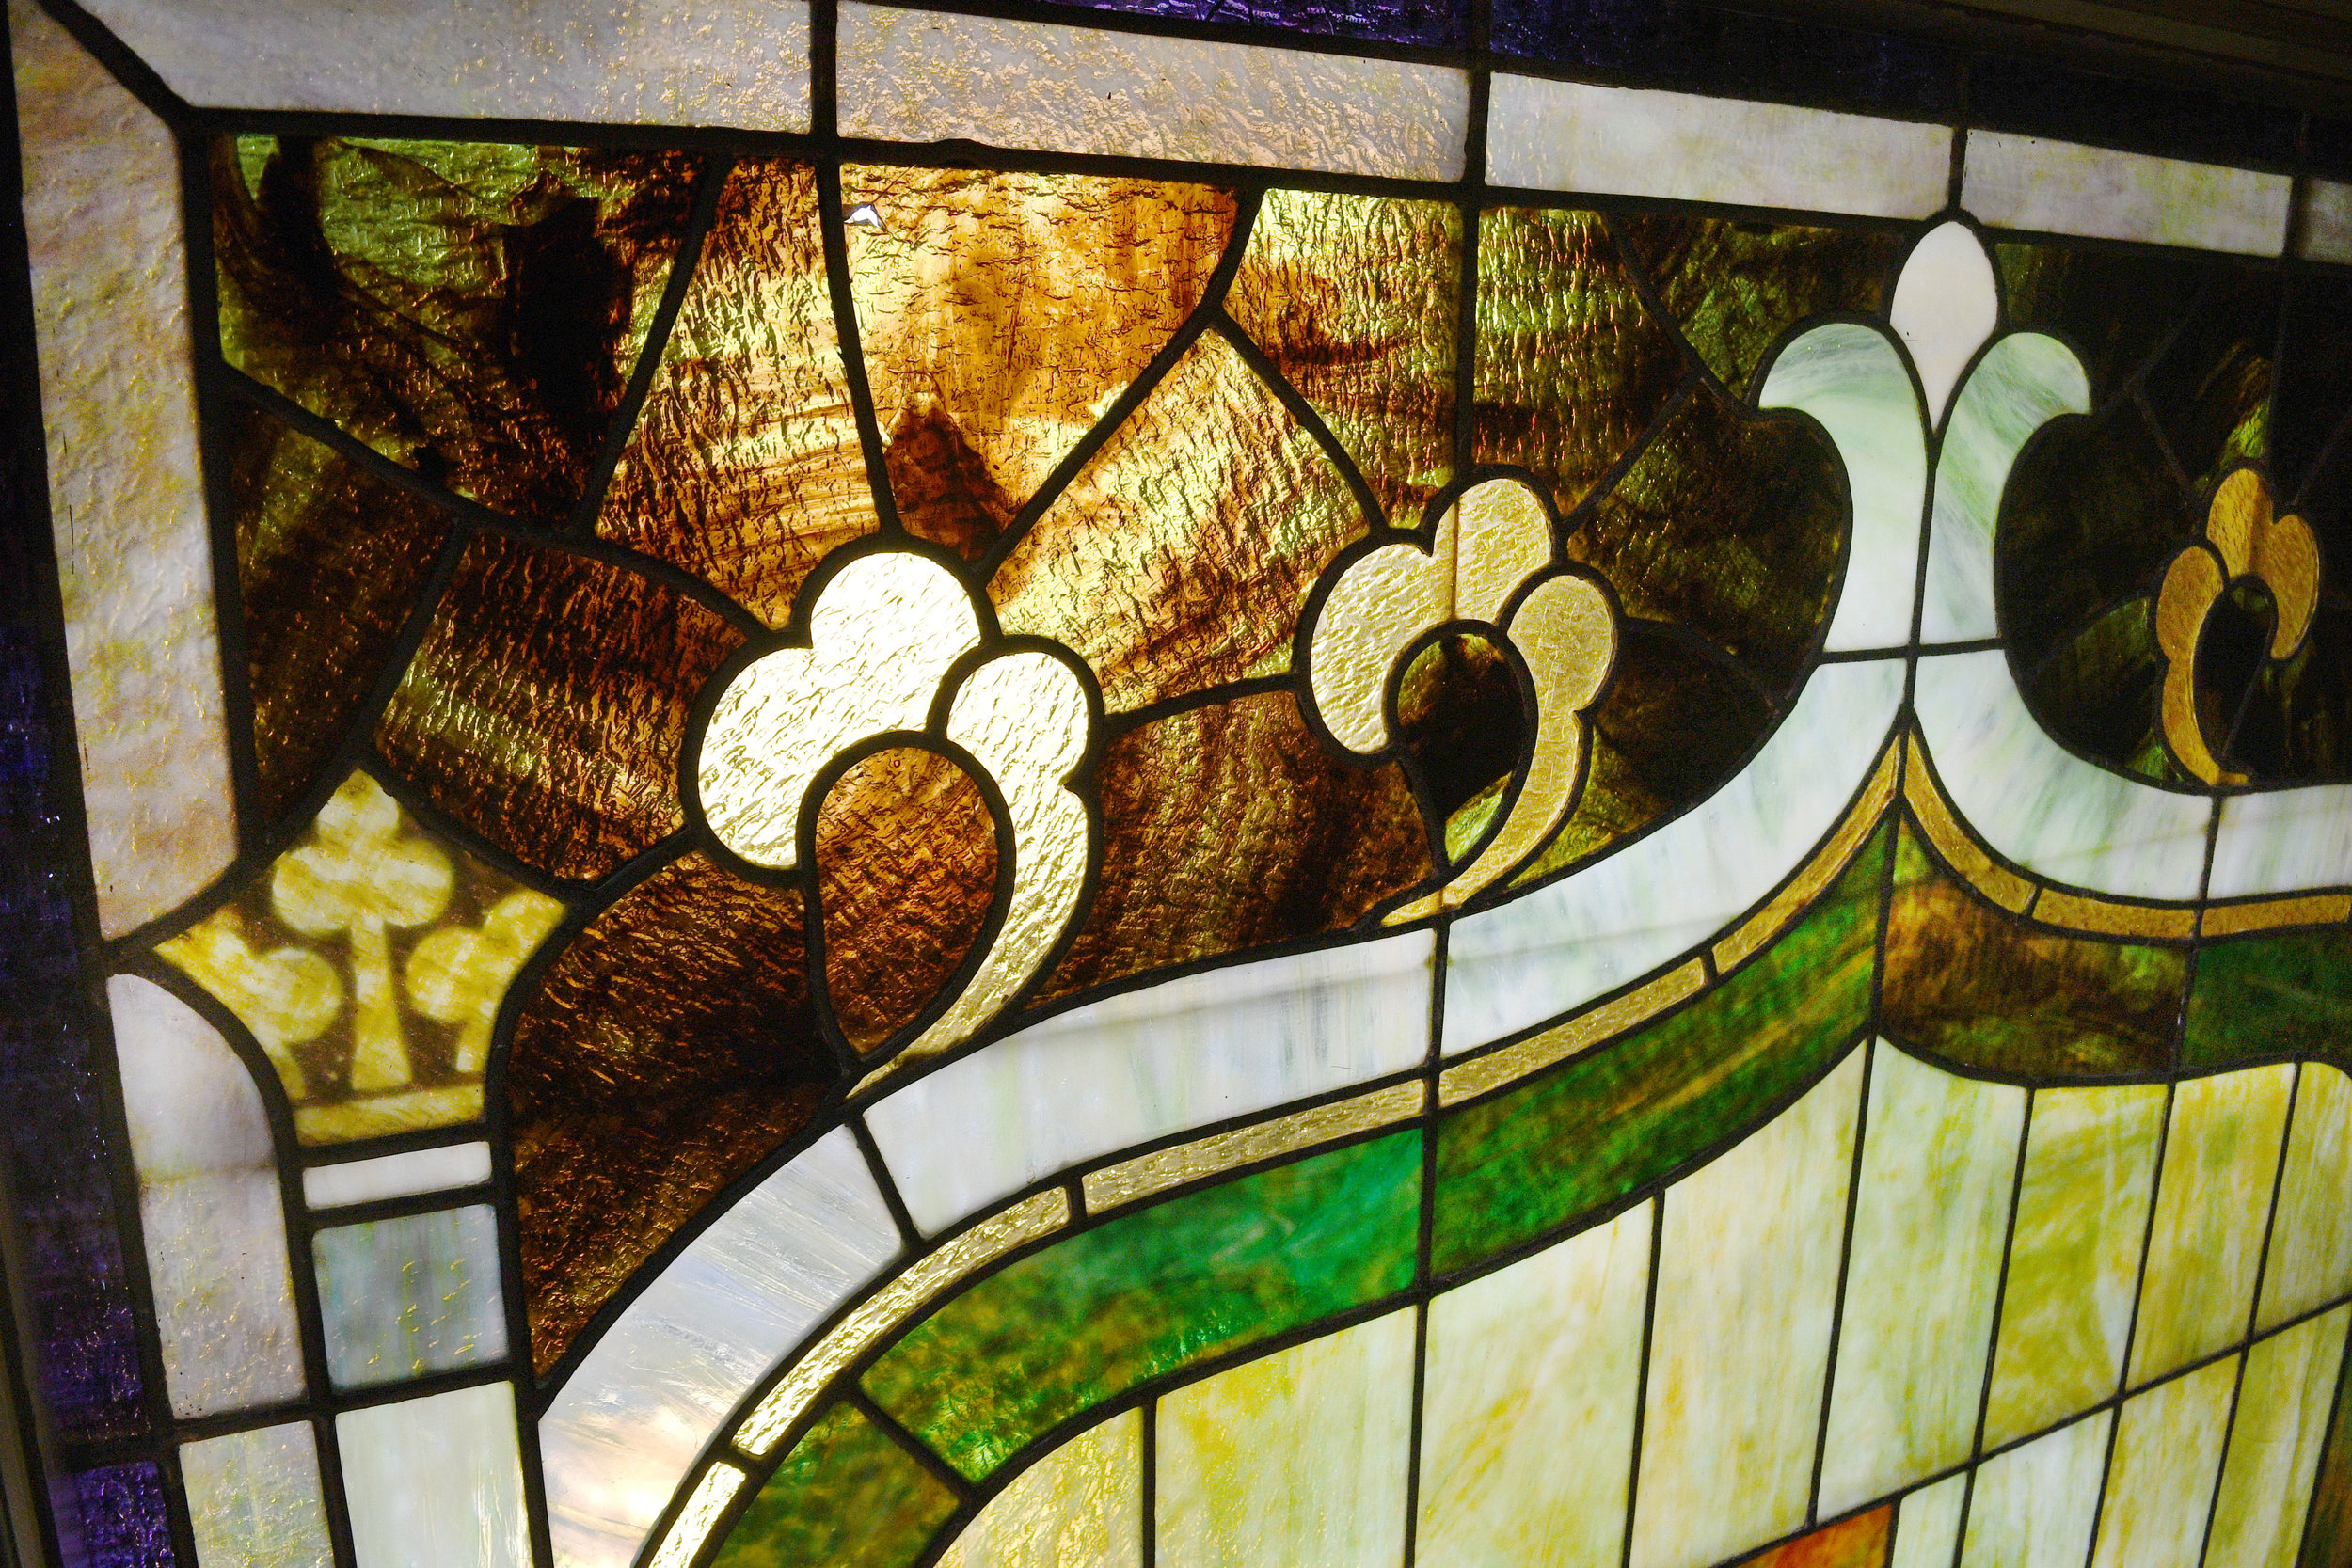 stained-glass-5.jpg